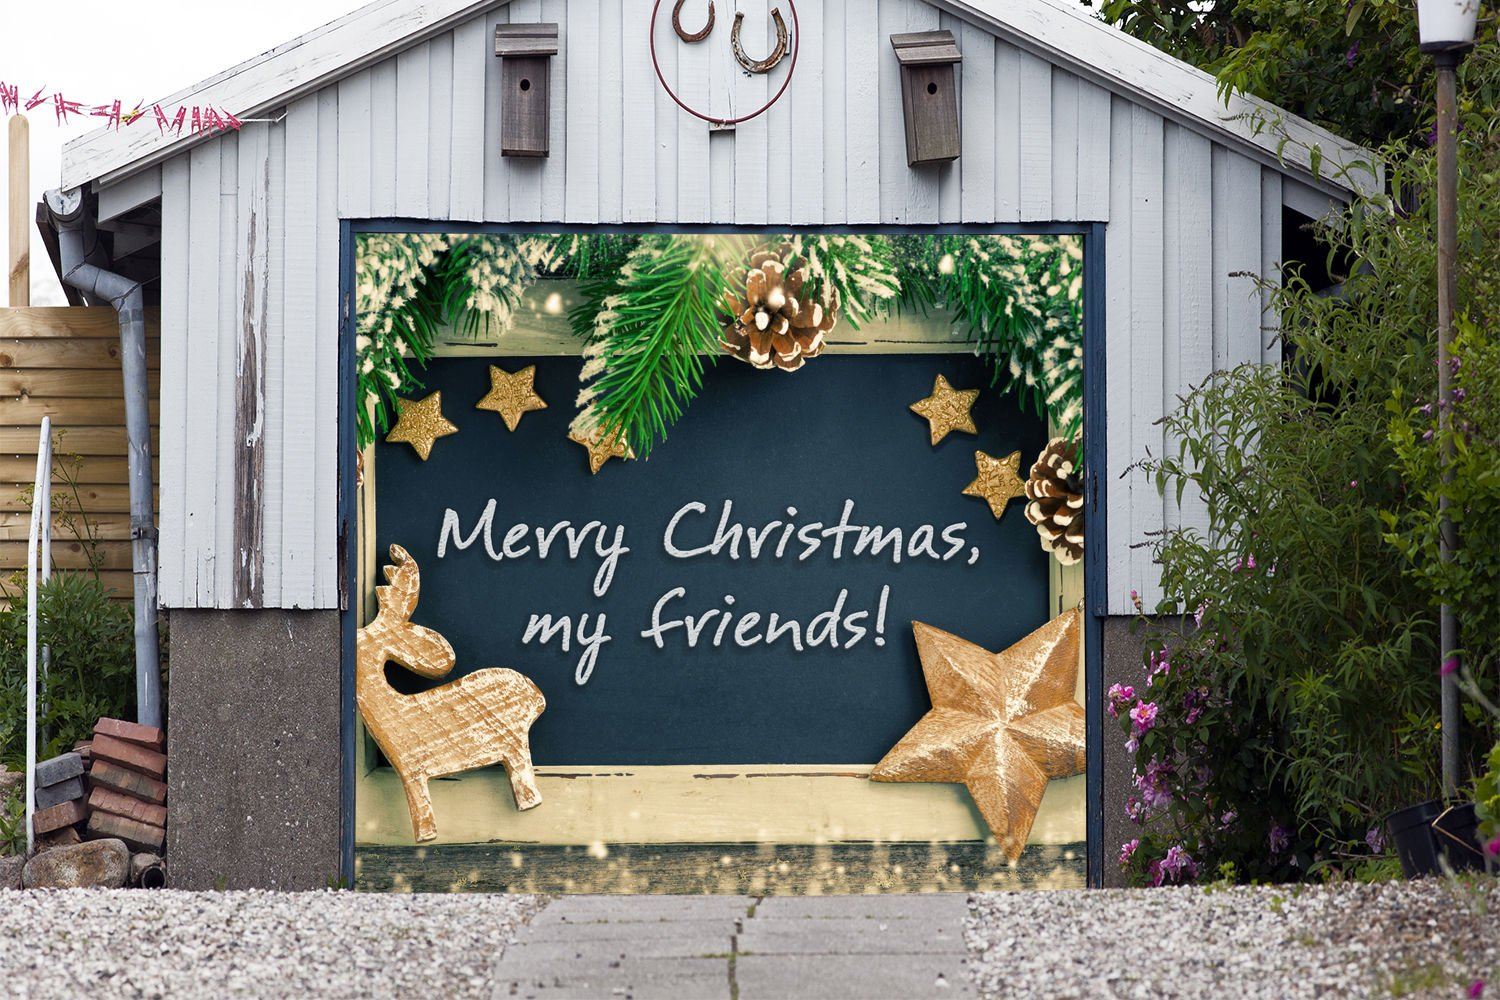 Merry Christmas Garage Holiday Banner Door Cover for SINGLE CAR GARAGE DOOR MURALS Covers Outdoor Decor Billboard Full Color 3D Effect Print Decorations of House Size 83 x 96 inches DAV115